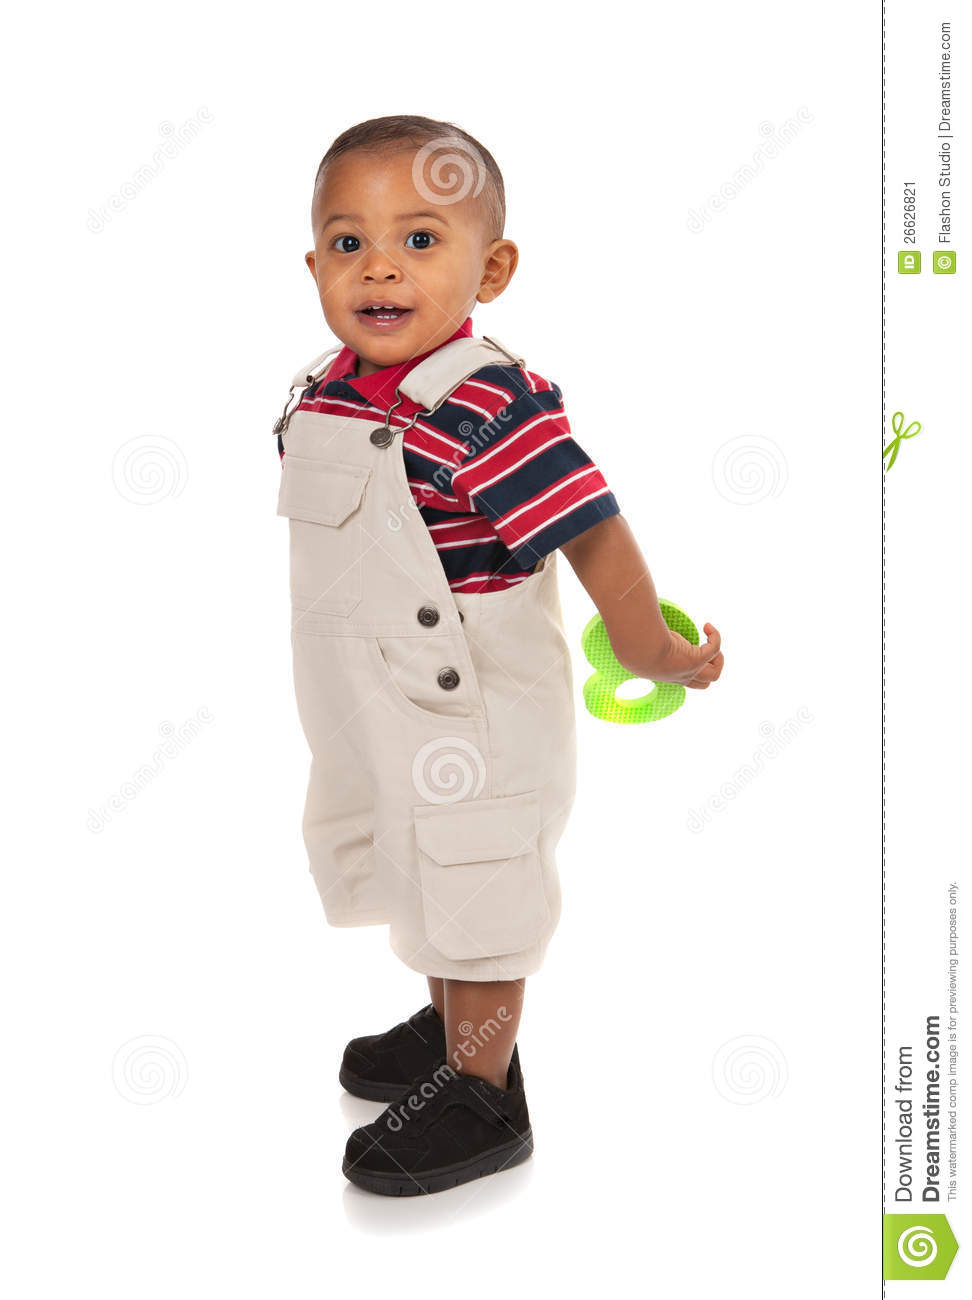 Smiling 1 Year Old Baby Boy Standing Holding Toy Stock